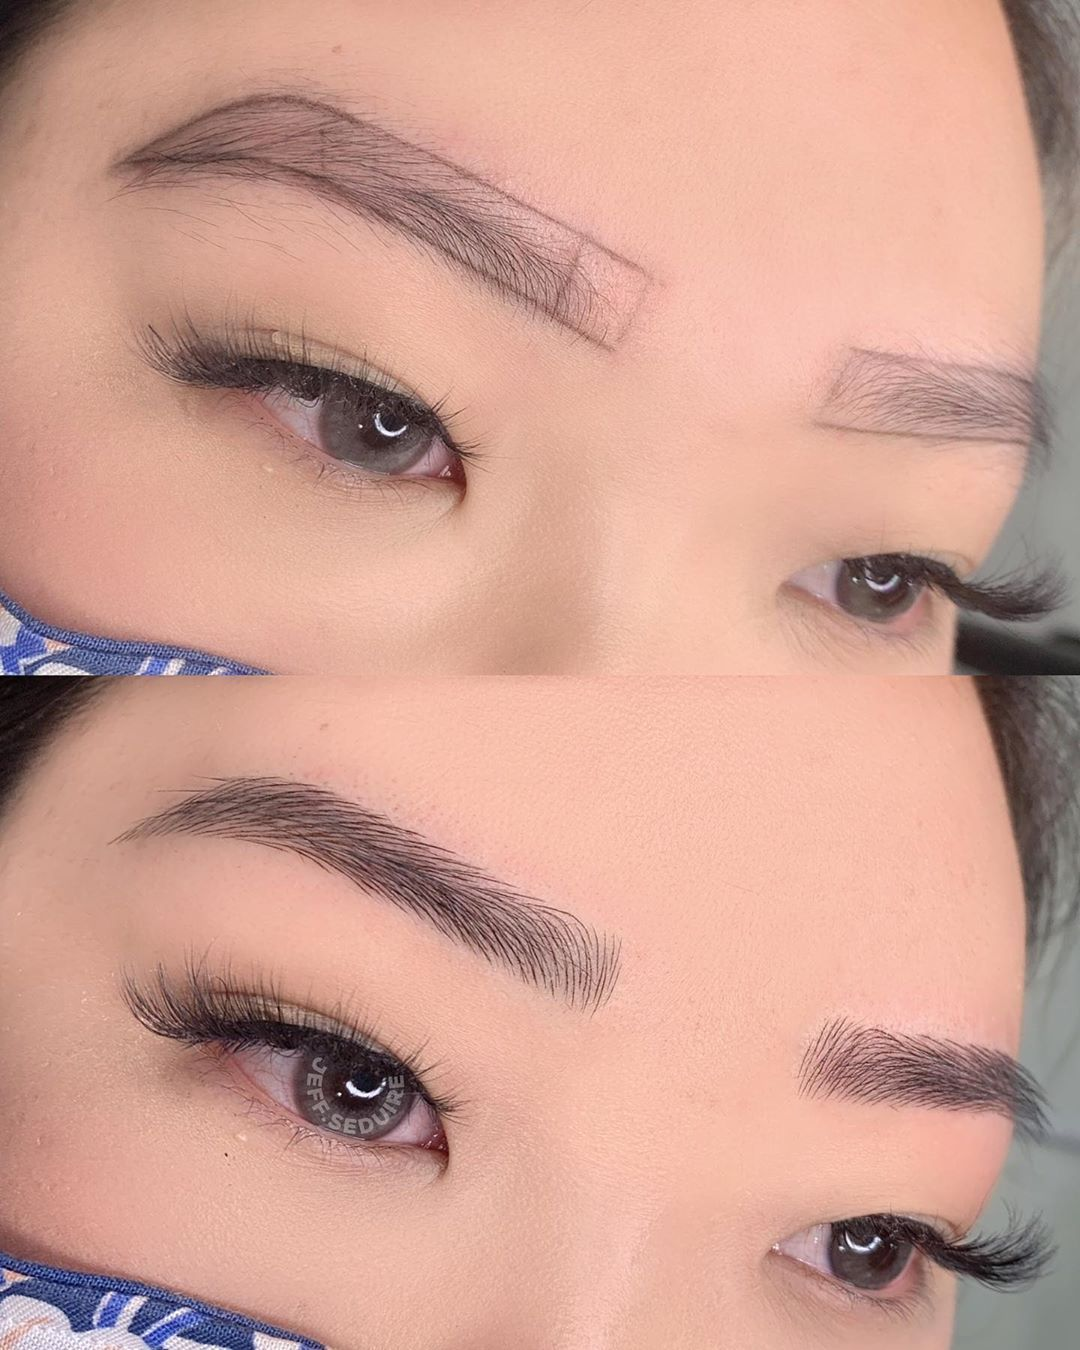 Pin by Natural Beauty Serums on Eyebrows in 2020 ...